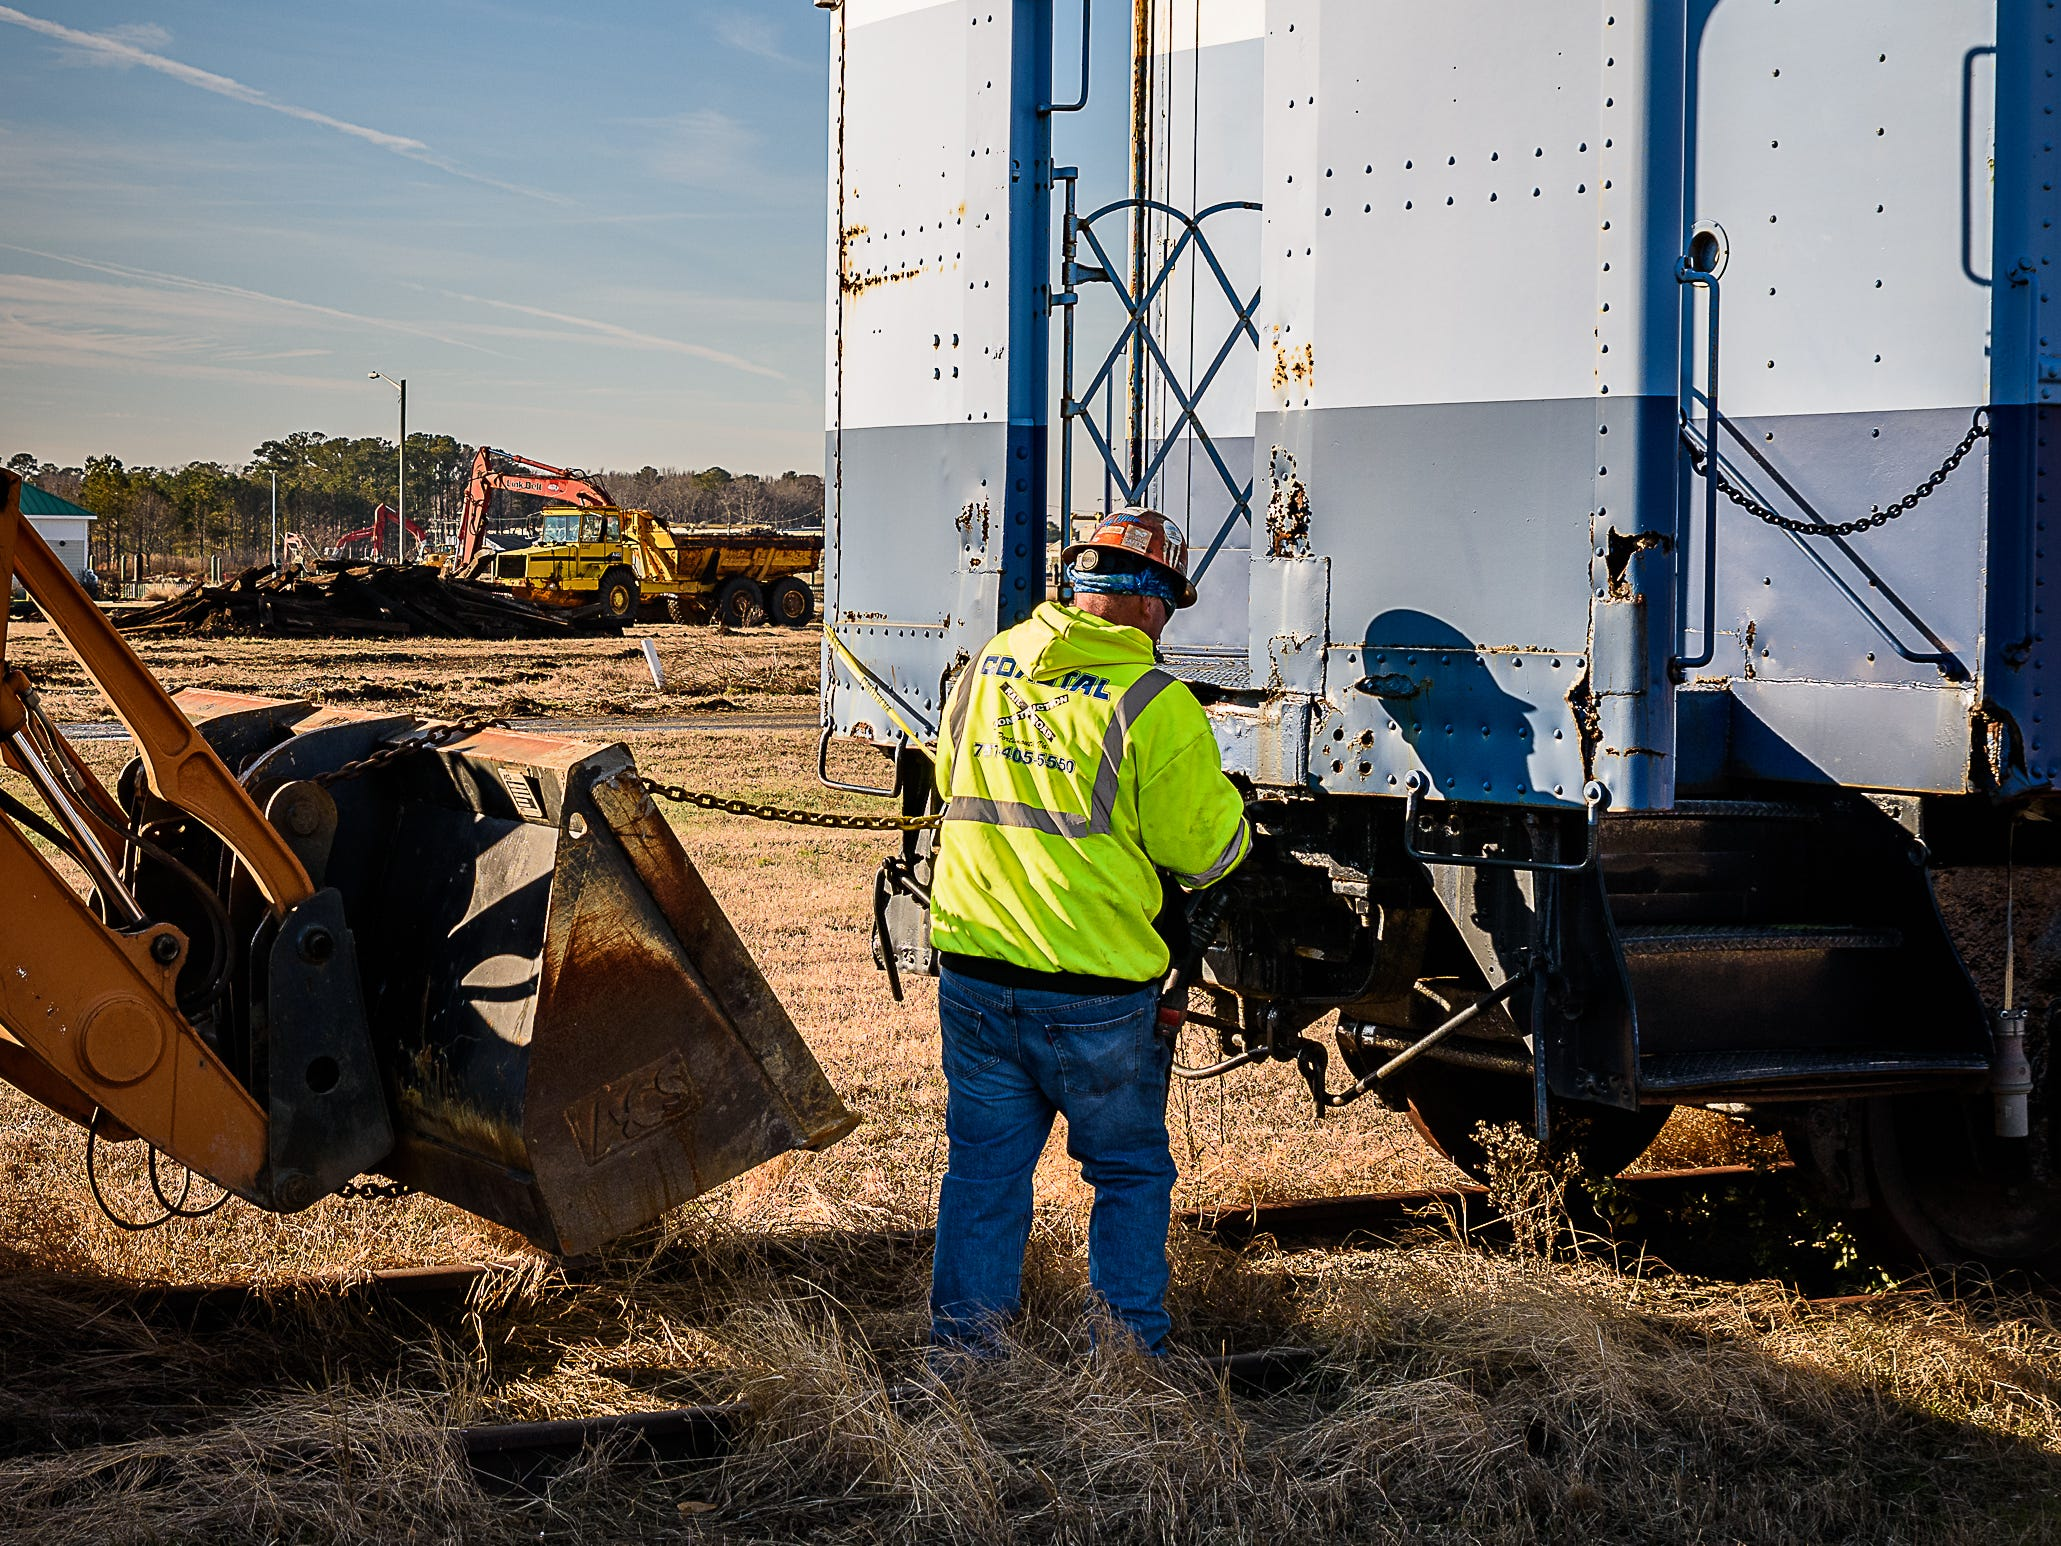 A worker begins hooking equipment to start the process of moving a railway car in Cape Charles.